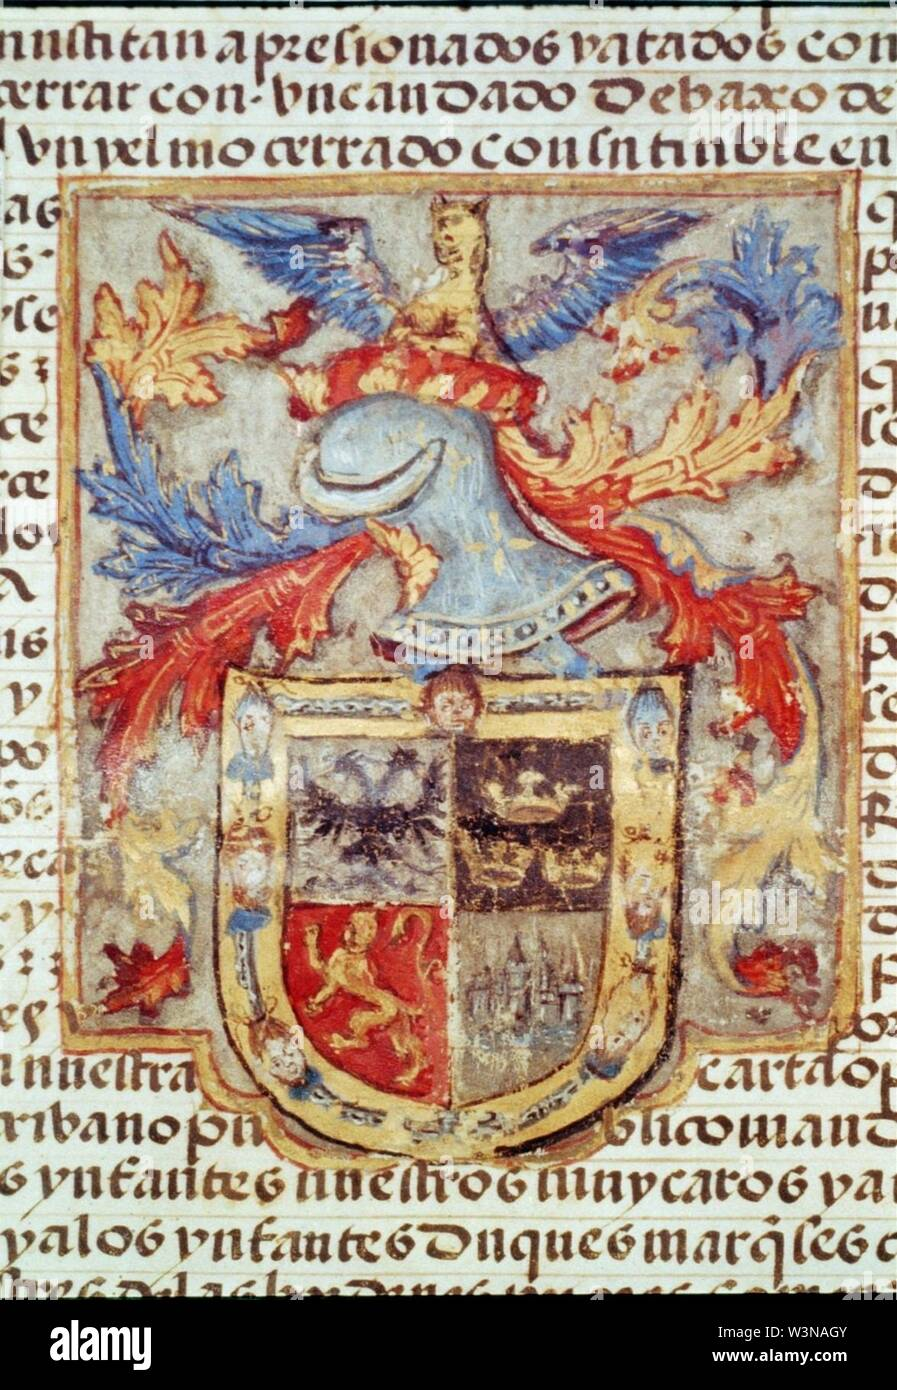 Coat of arms of Hernando Cortes, granted him by Emperor Charles V - Drawing from 5th sheet of grant - Stock Image